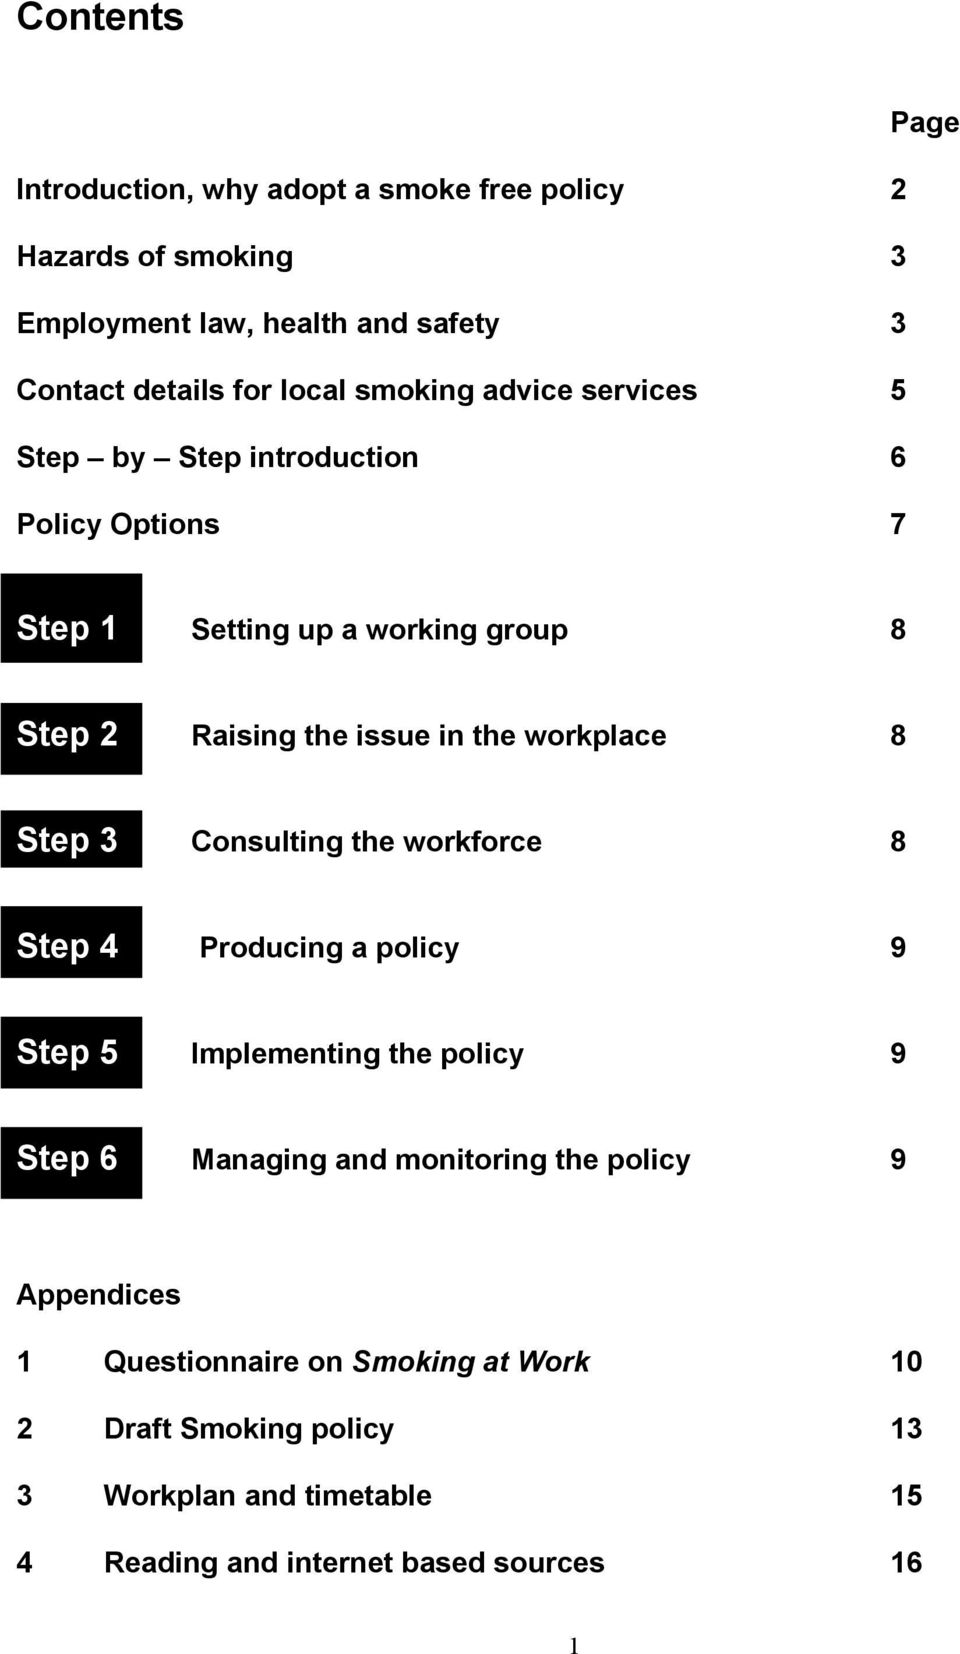 workplace 8 Step 3 Consulting the workforce 8 Step 4 Producing a policy 9 Step 5 Implementing the policy 9 Step 6 Managing and monitoring the